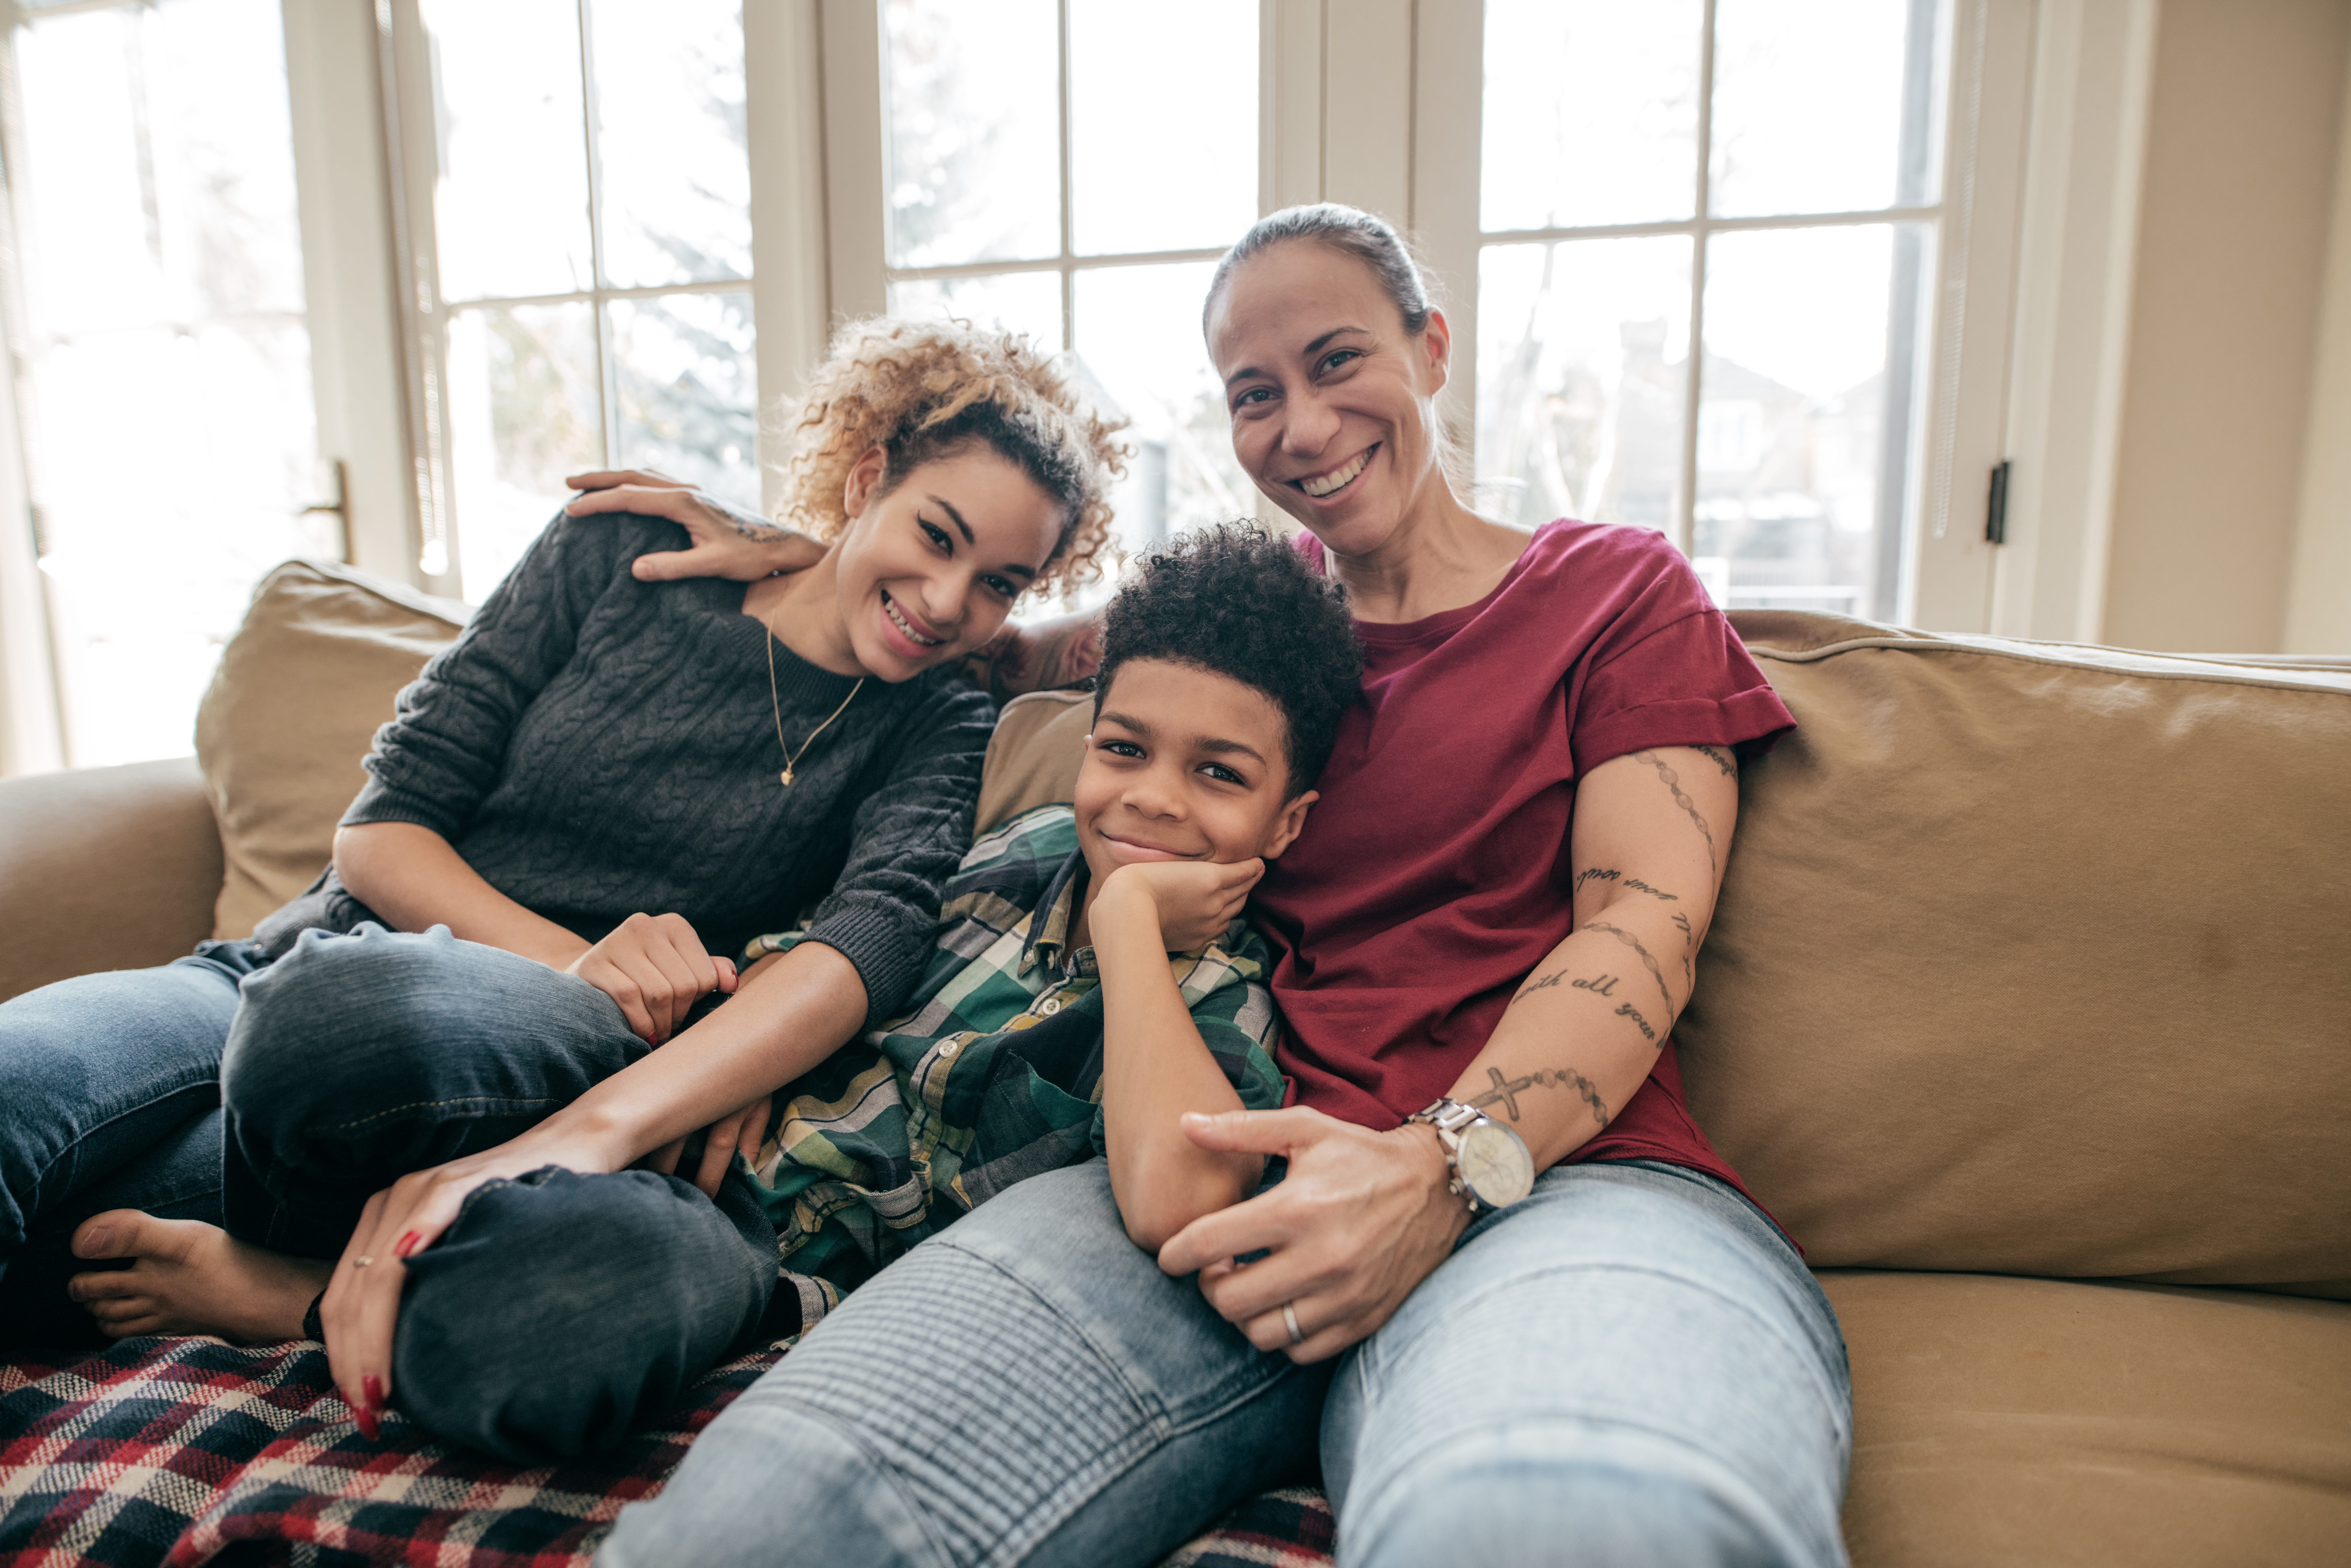 A queer family pose together smiling on a couch in their home